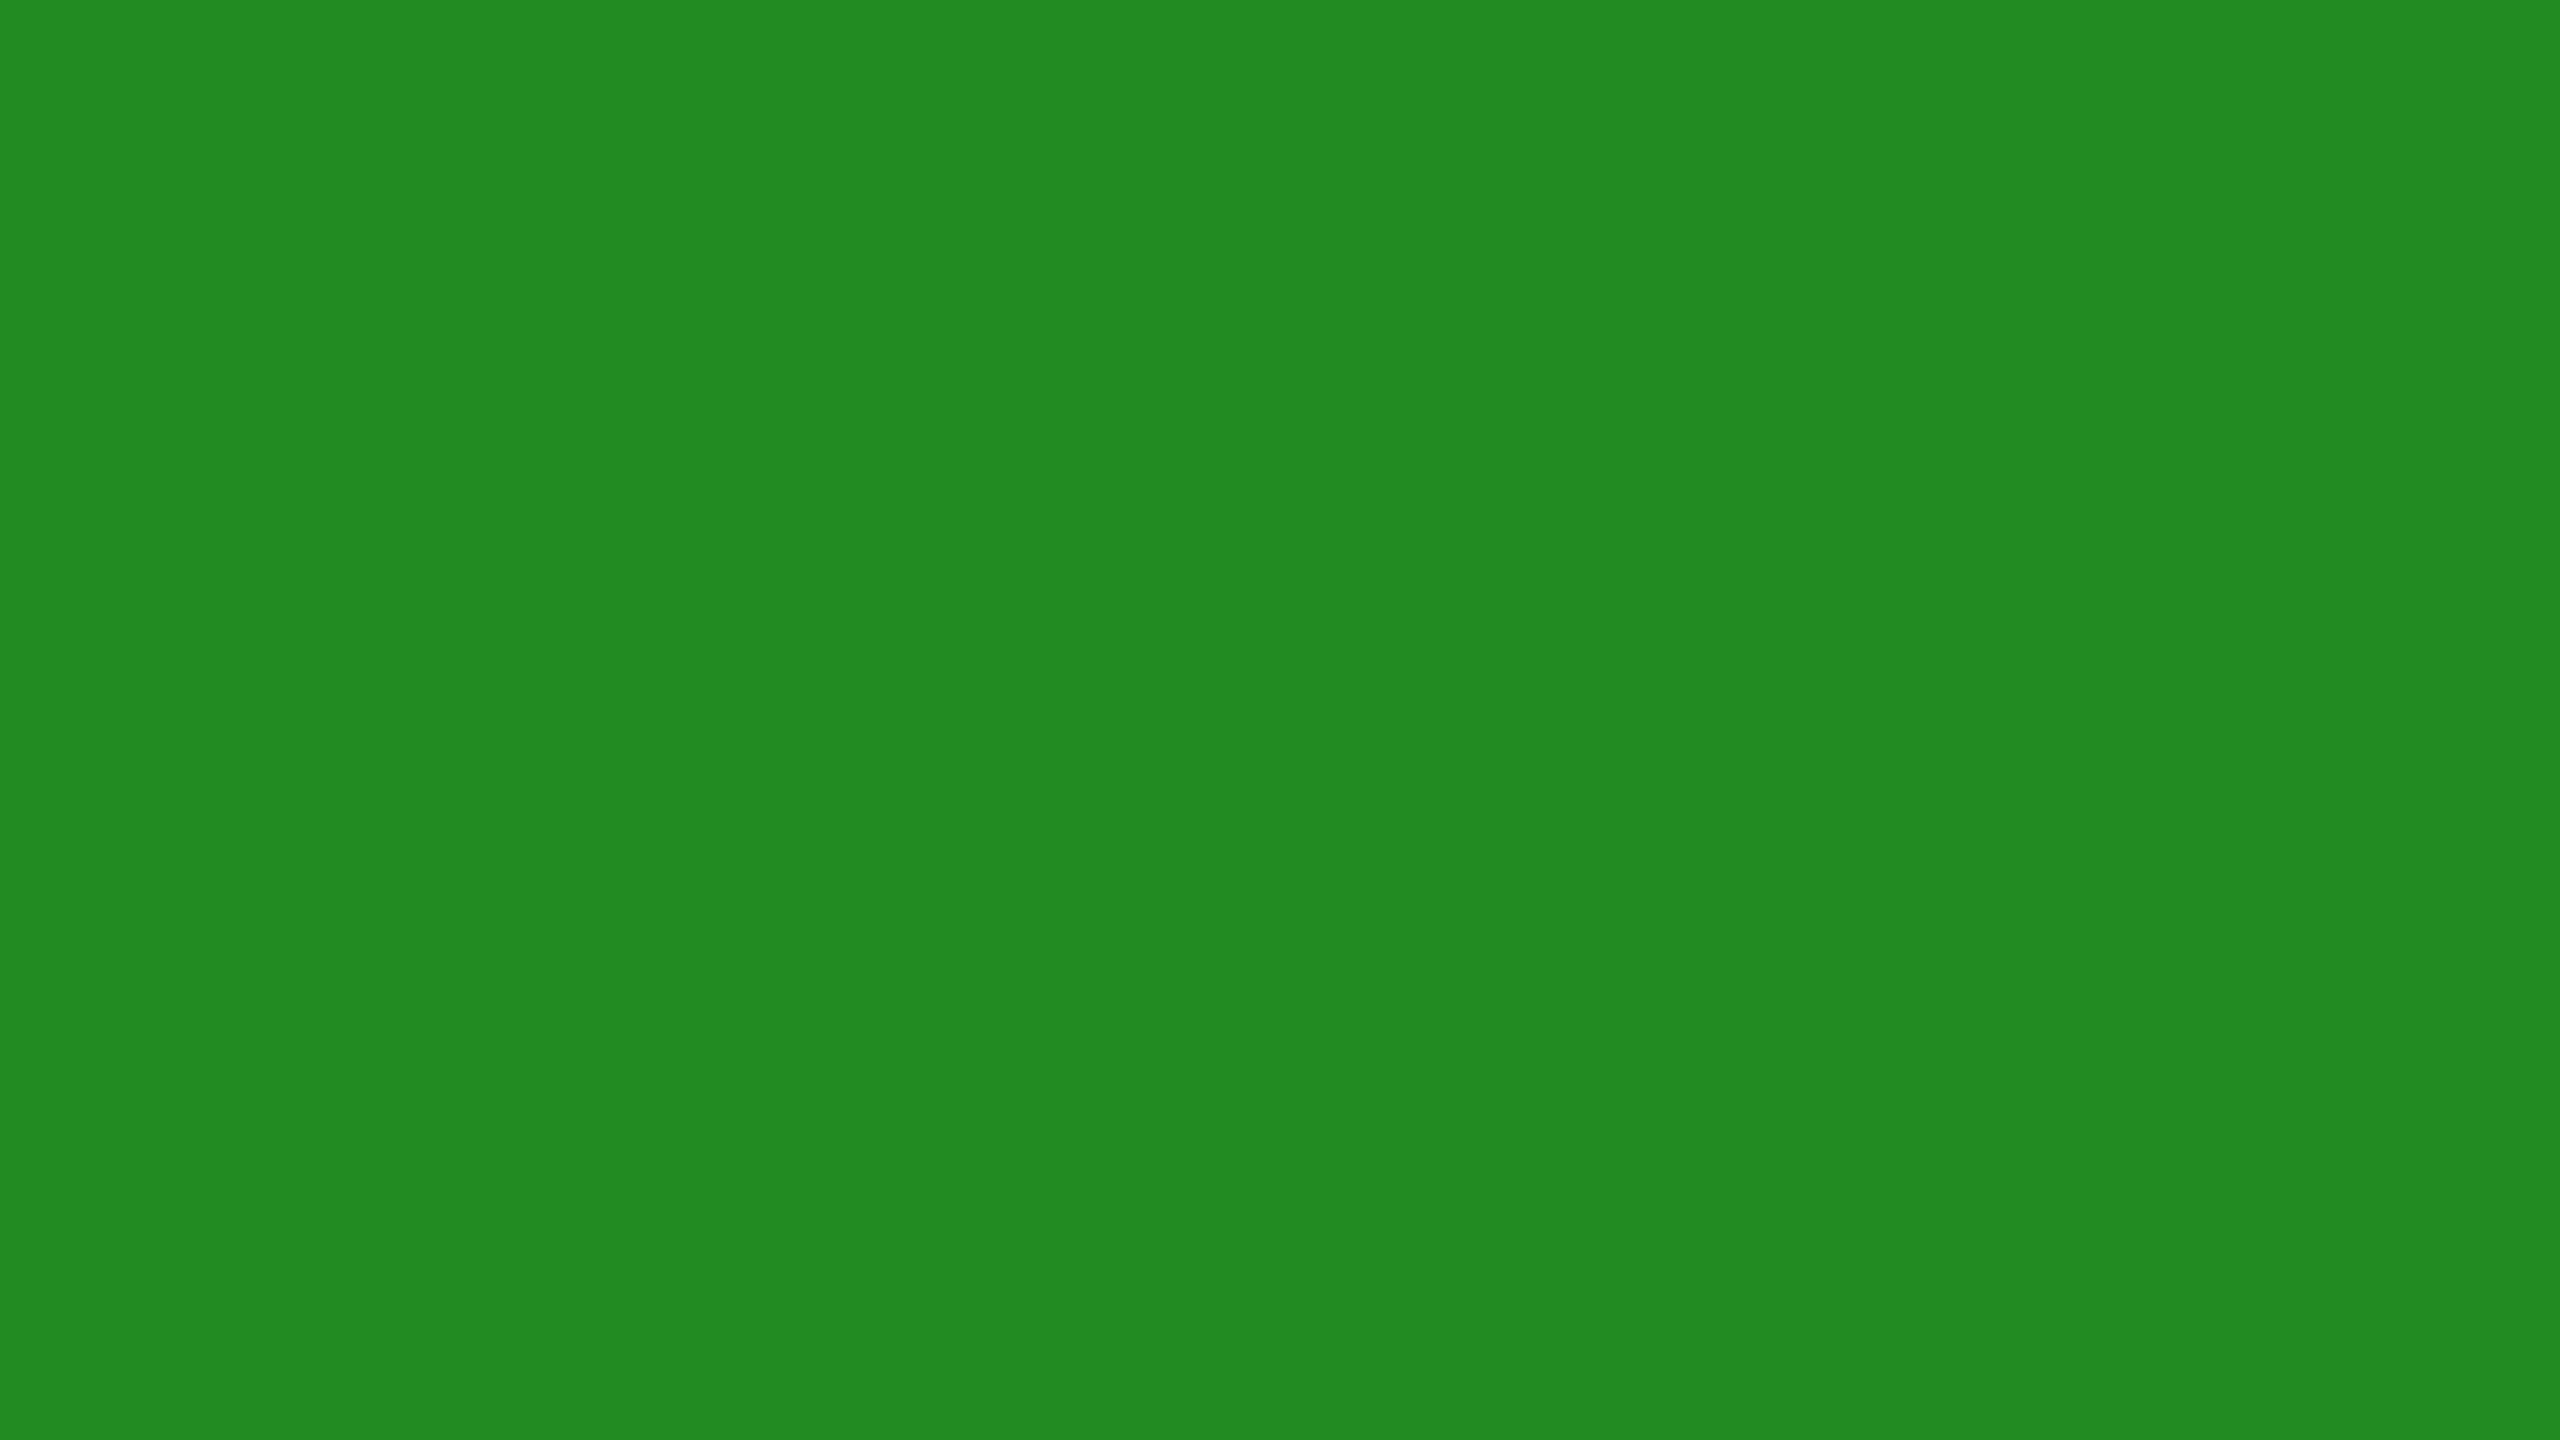 2560x1440 Forest Green For Web Solid Color Background